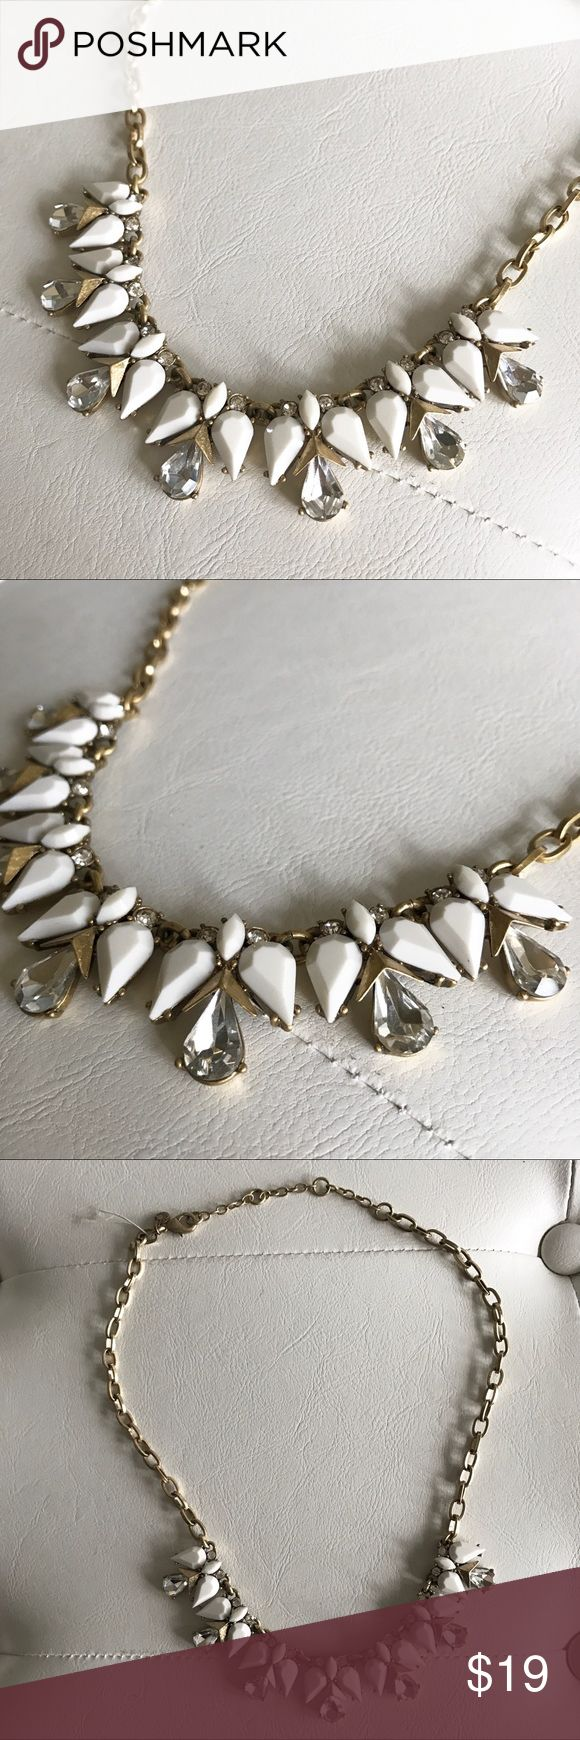 J.Crew Gold and White Statement Necklace Beautiful Statement Necklace - neutral colors that can be worn with any outfit. Never worn! J. Crew Jewelry Necklaces